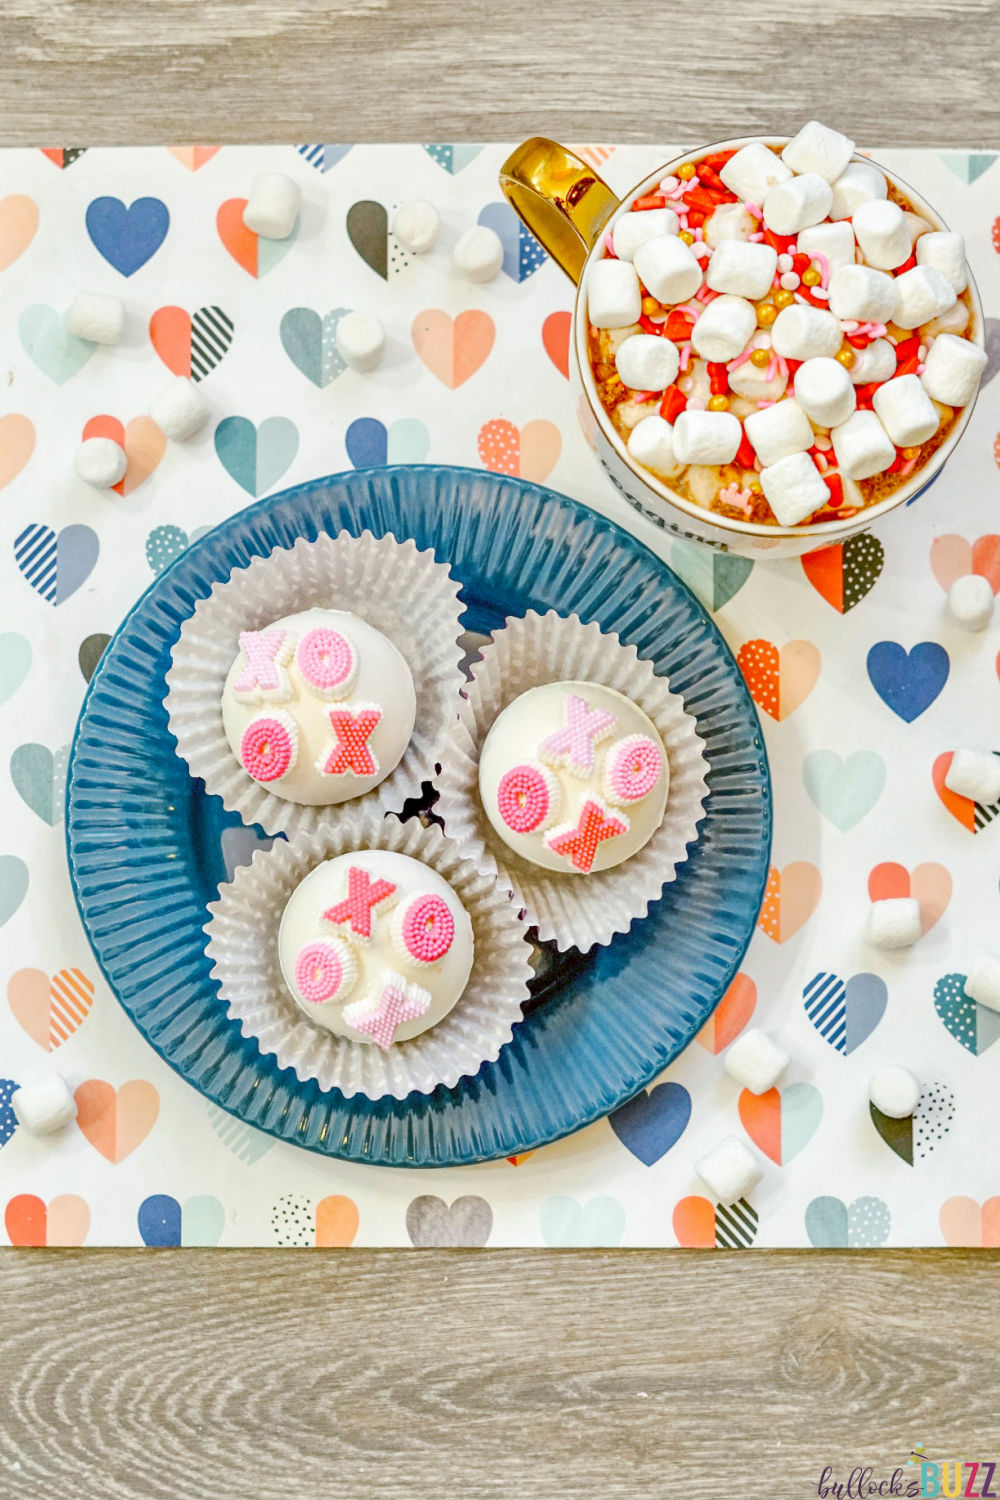 XOXO Valentine's hot cocoa bombs are fun and not too hard to make. Plus they taste amazing!